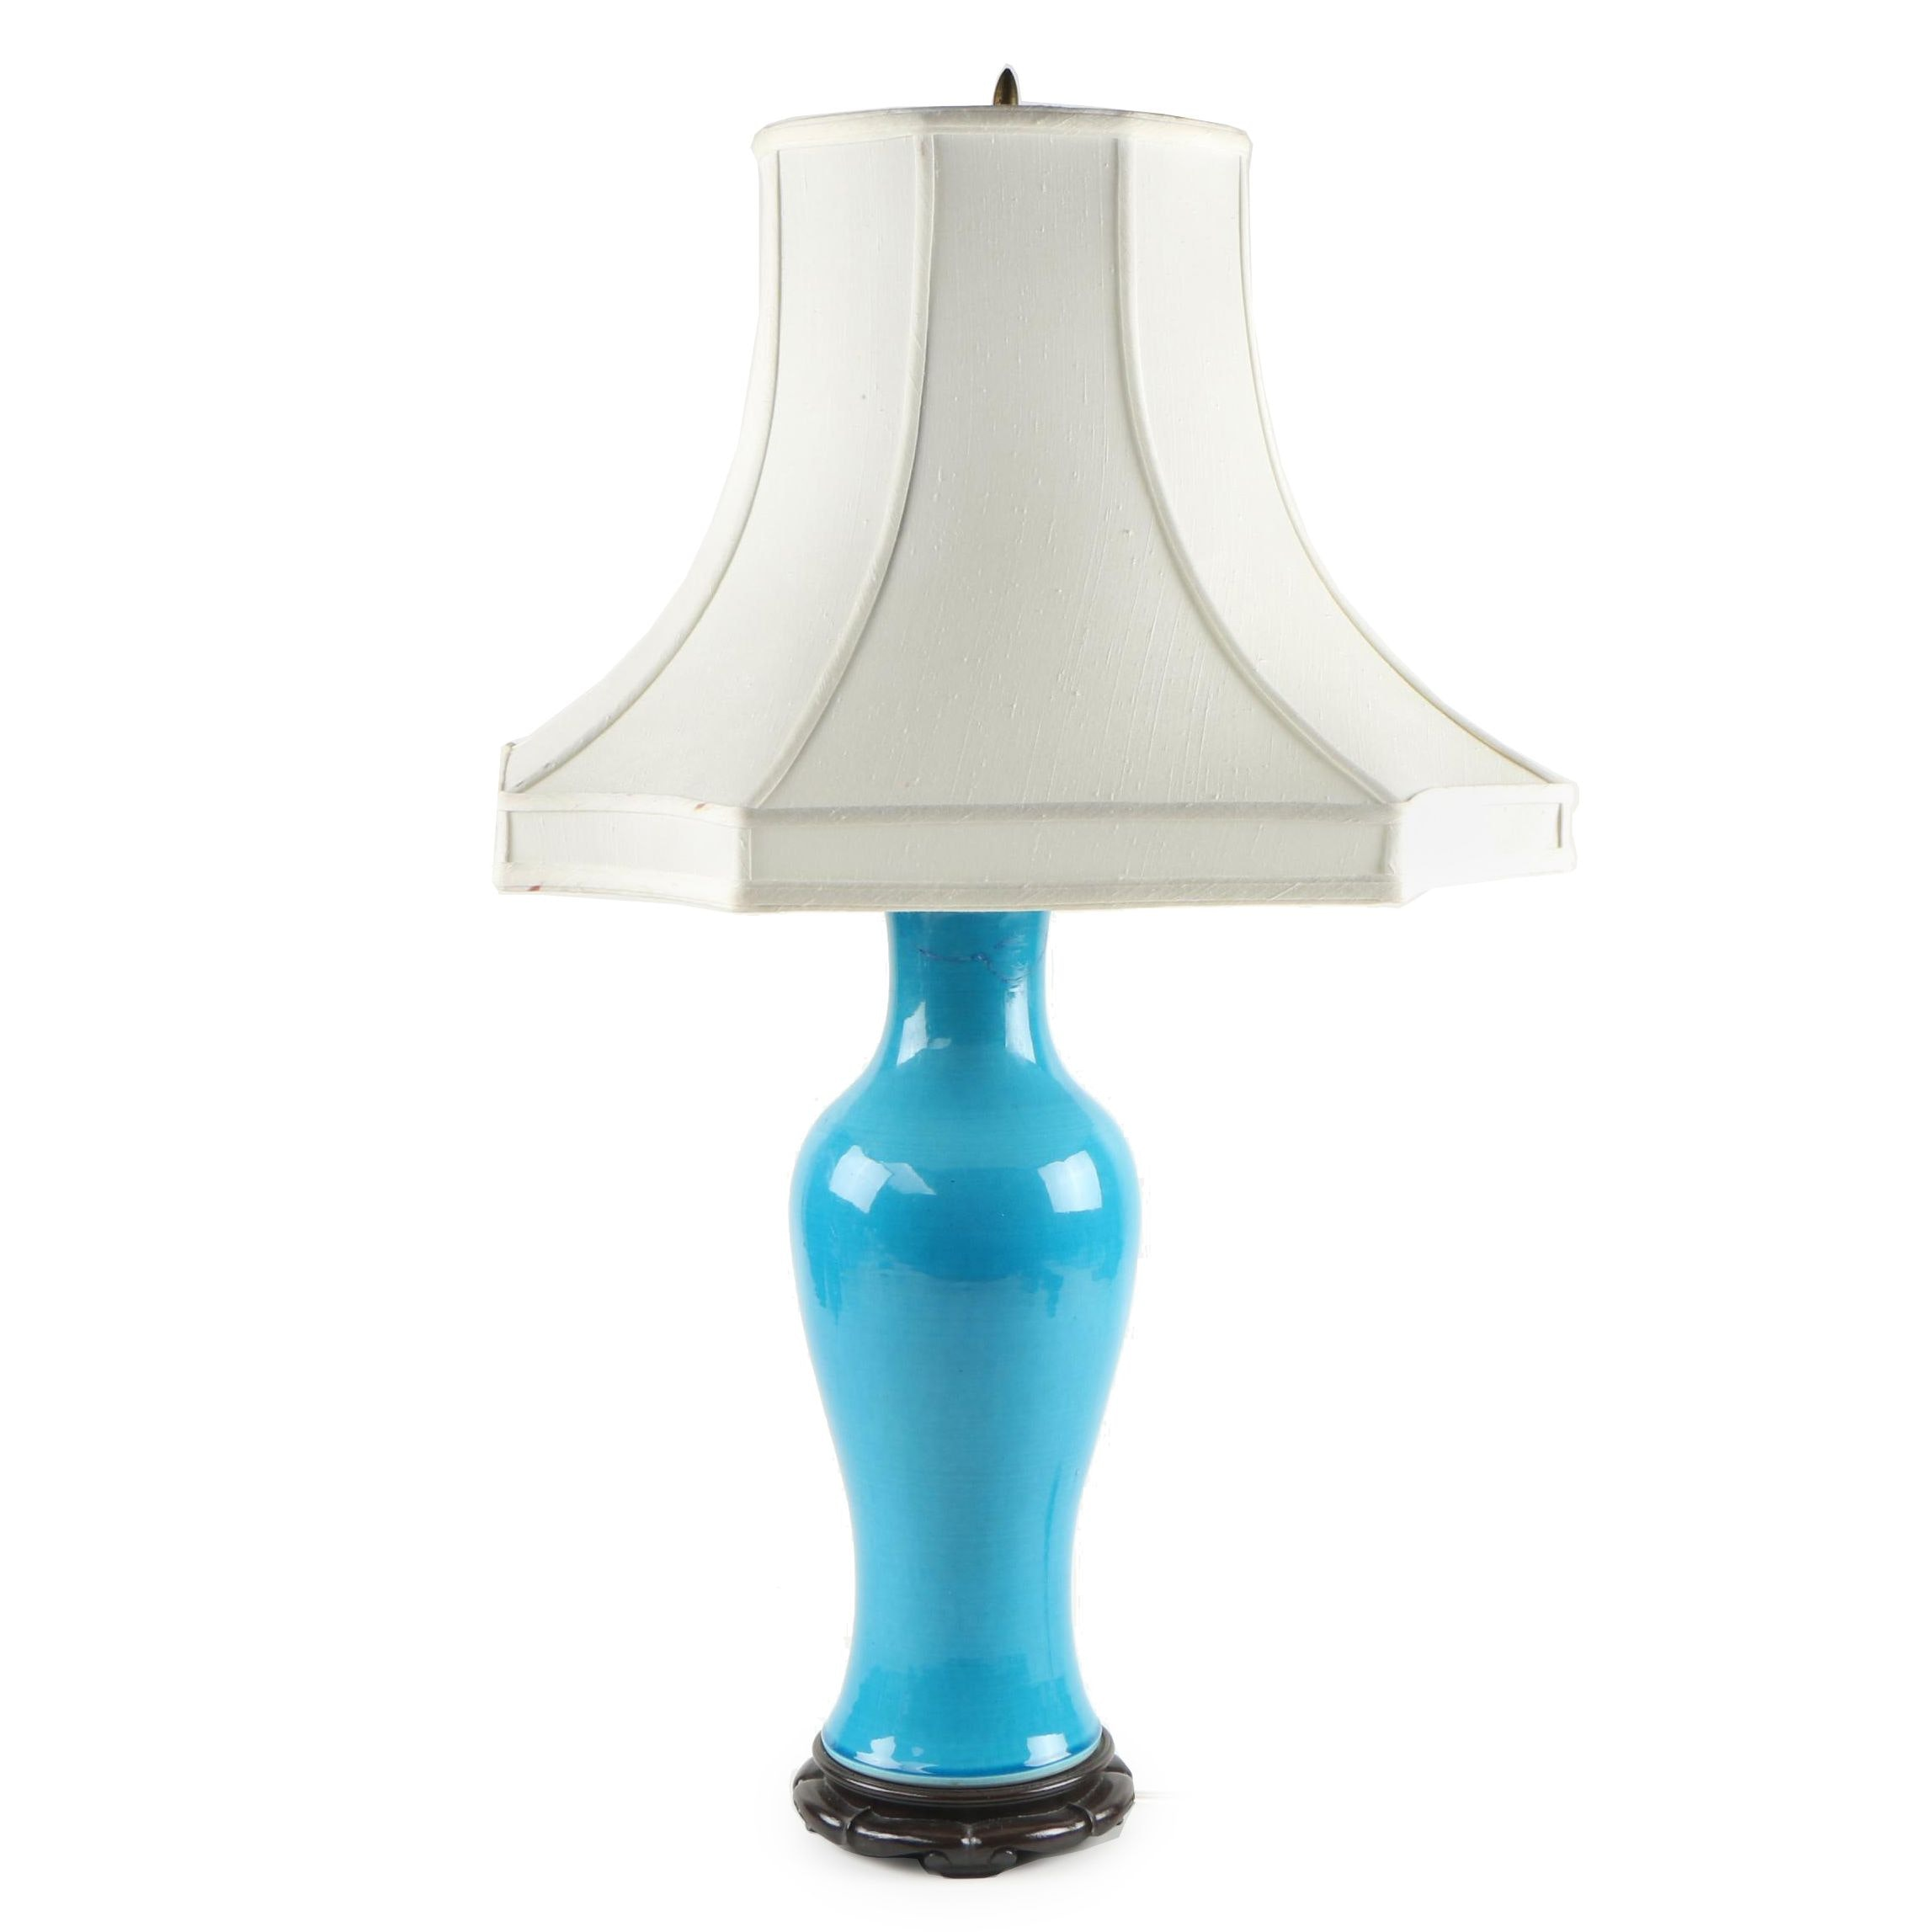 Converted East Asian Turquoise Glazed Pottery Vase Table Lamp with Shade